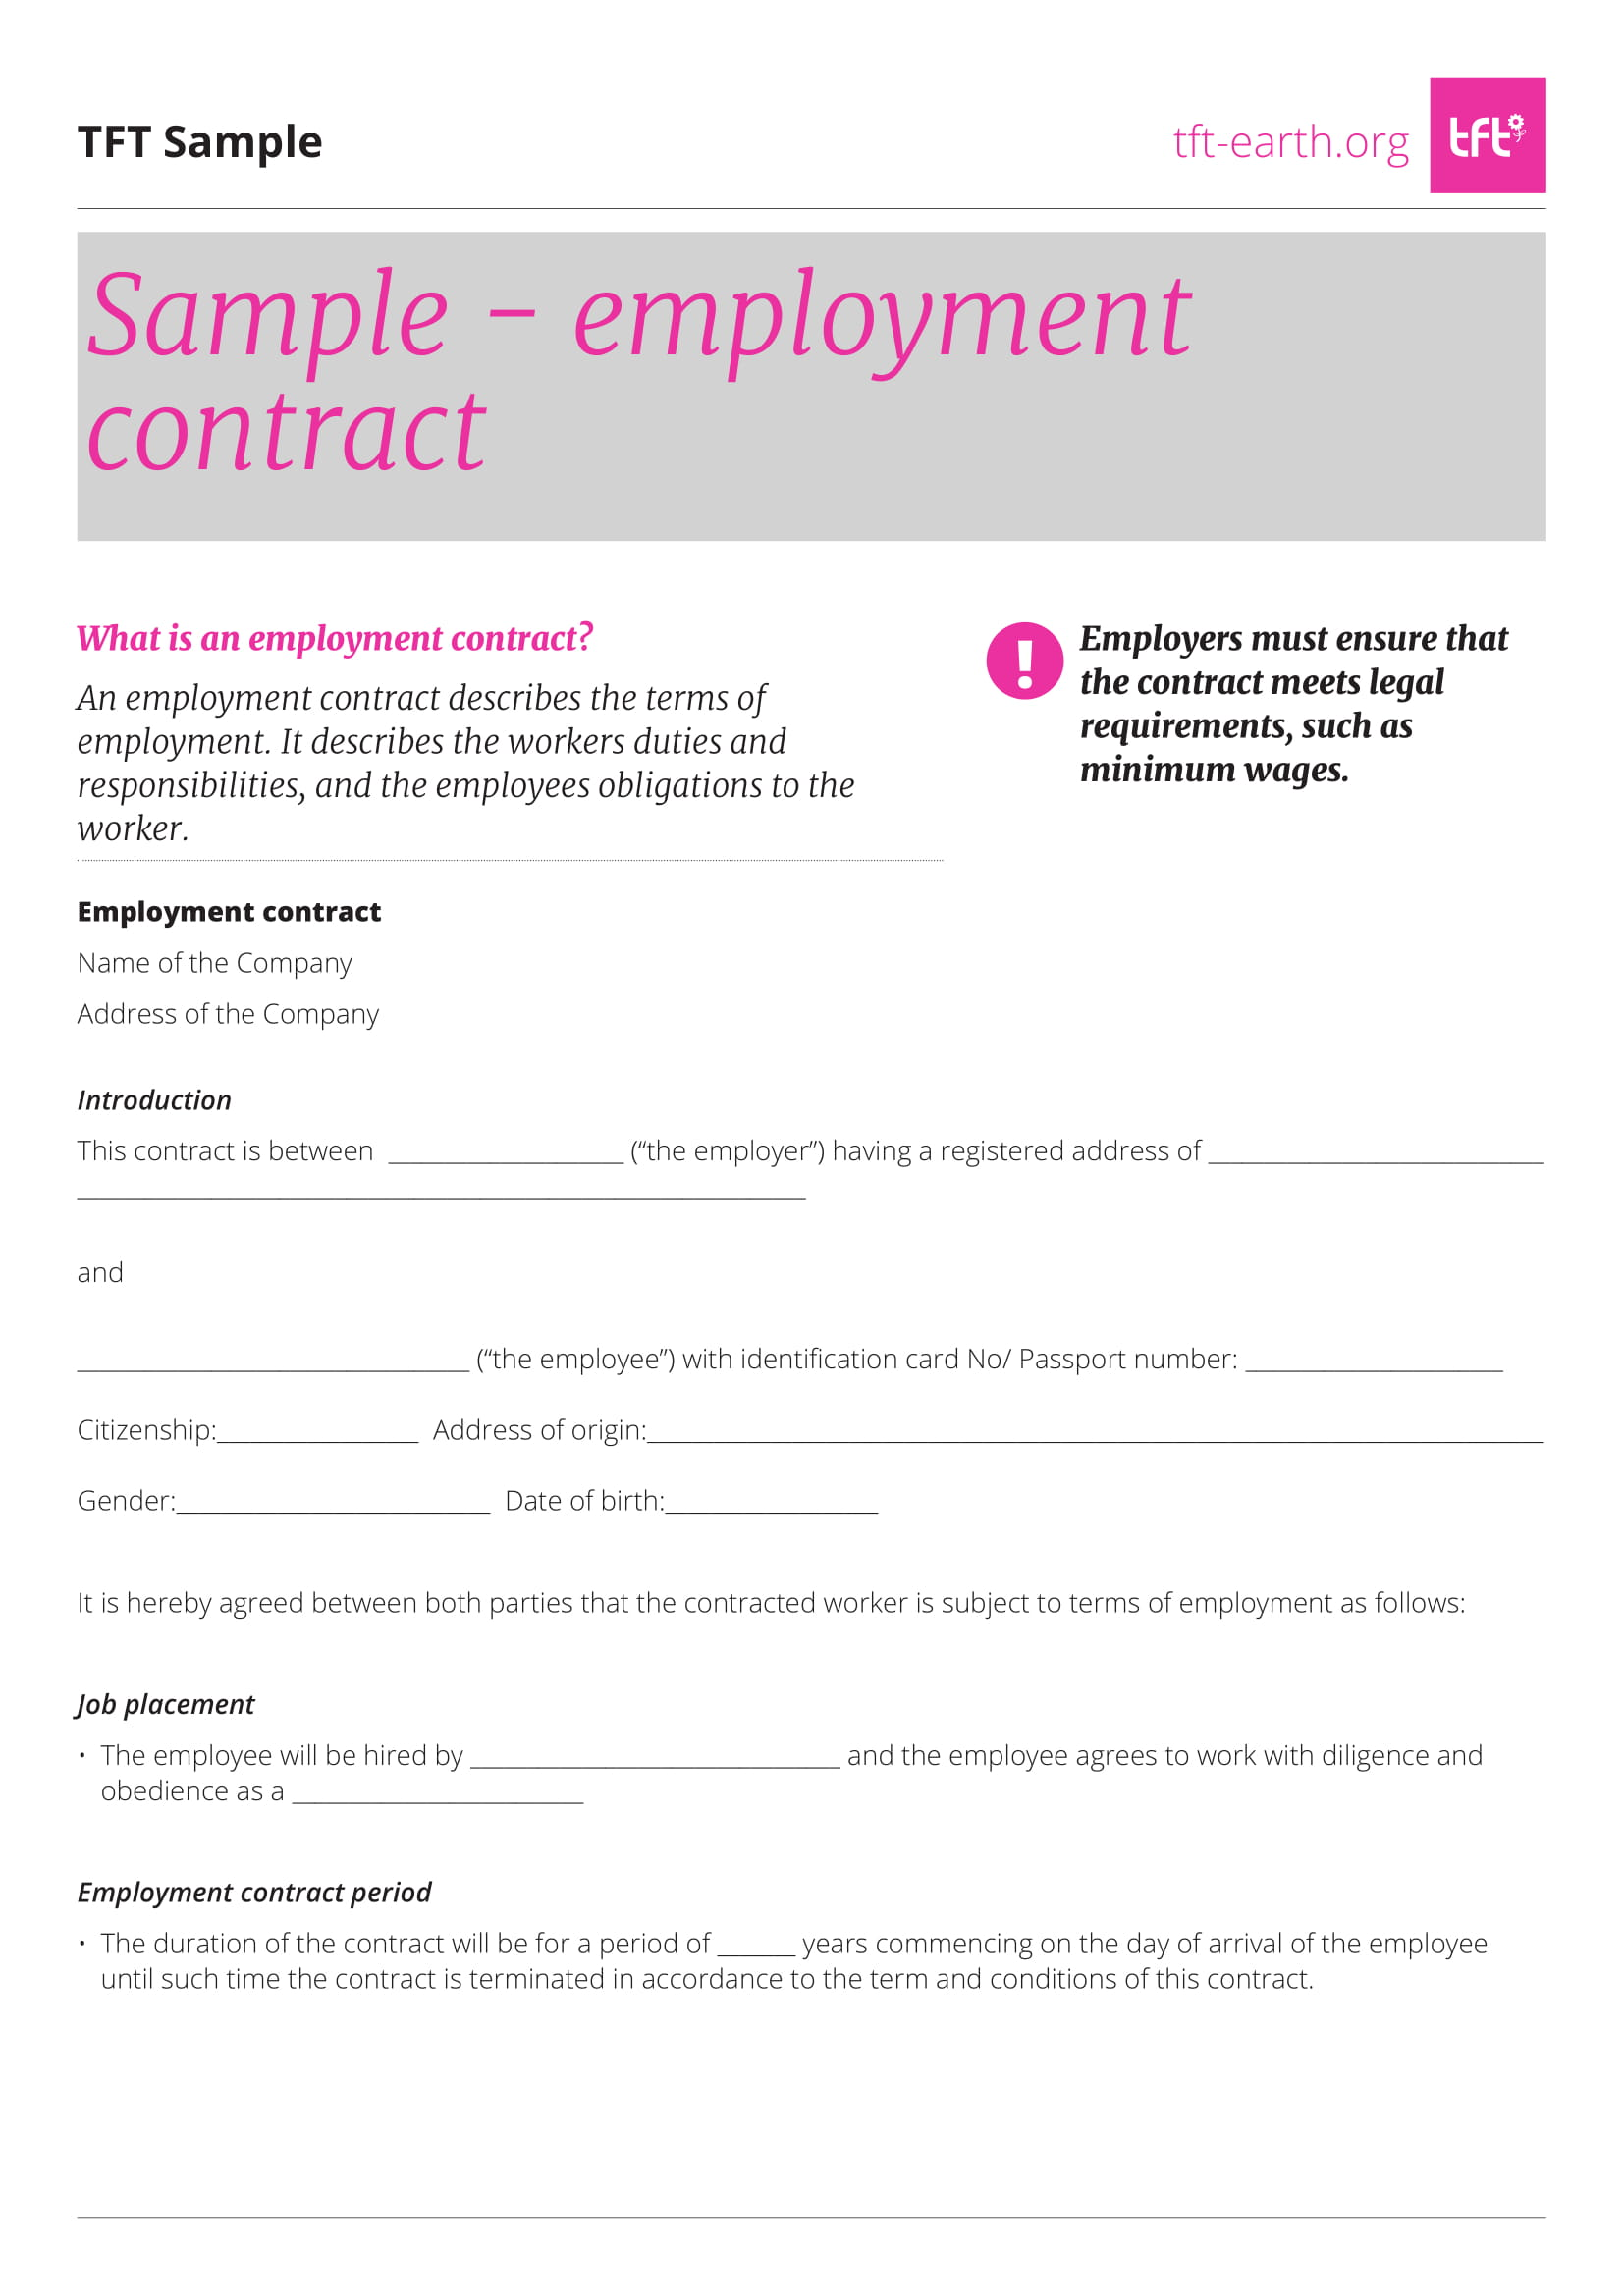 sample employment contract template1